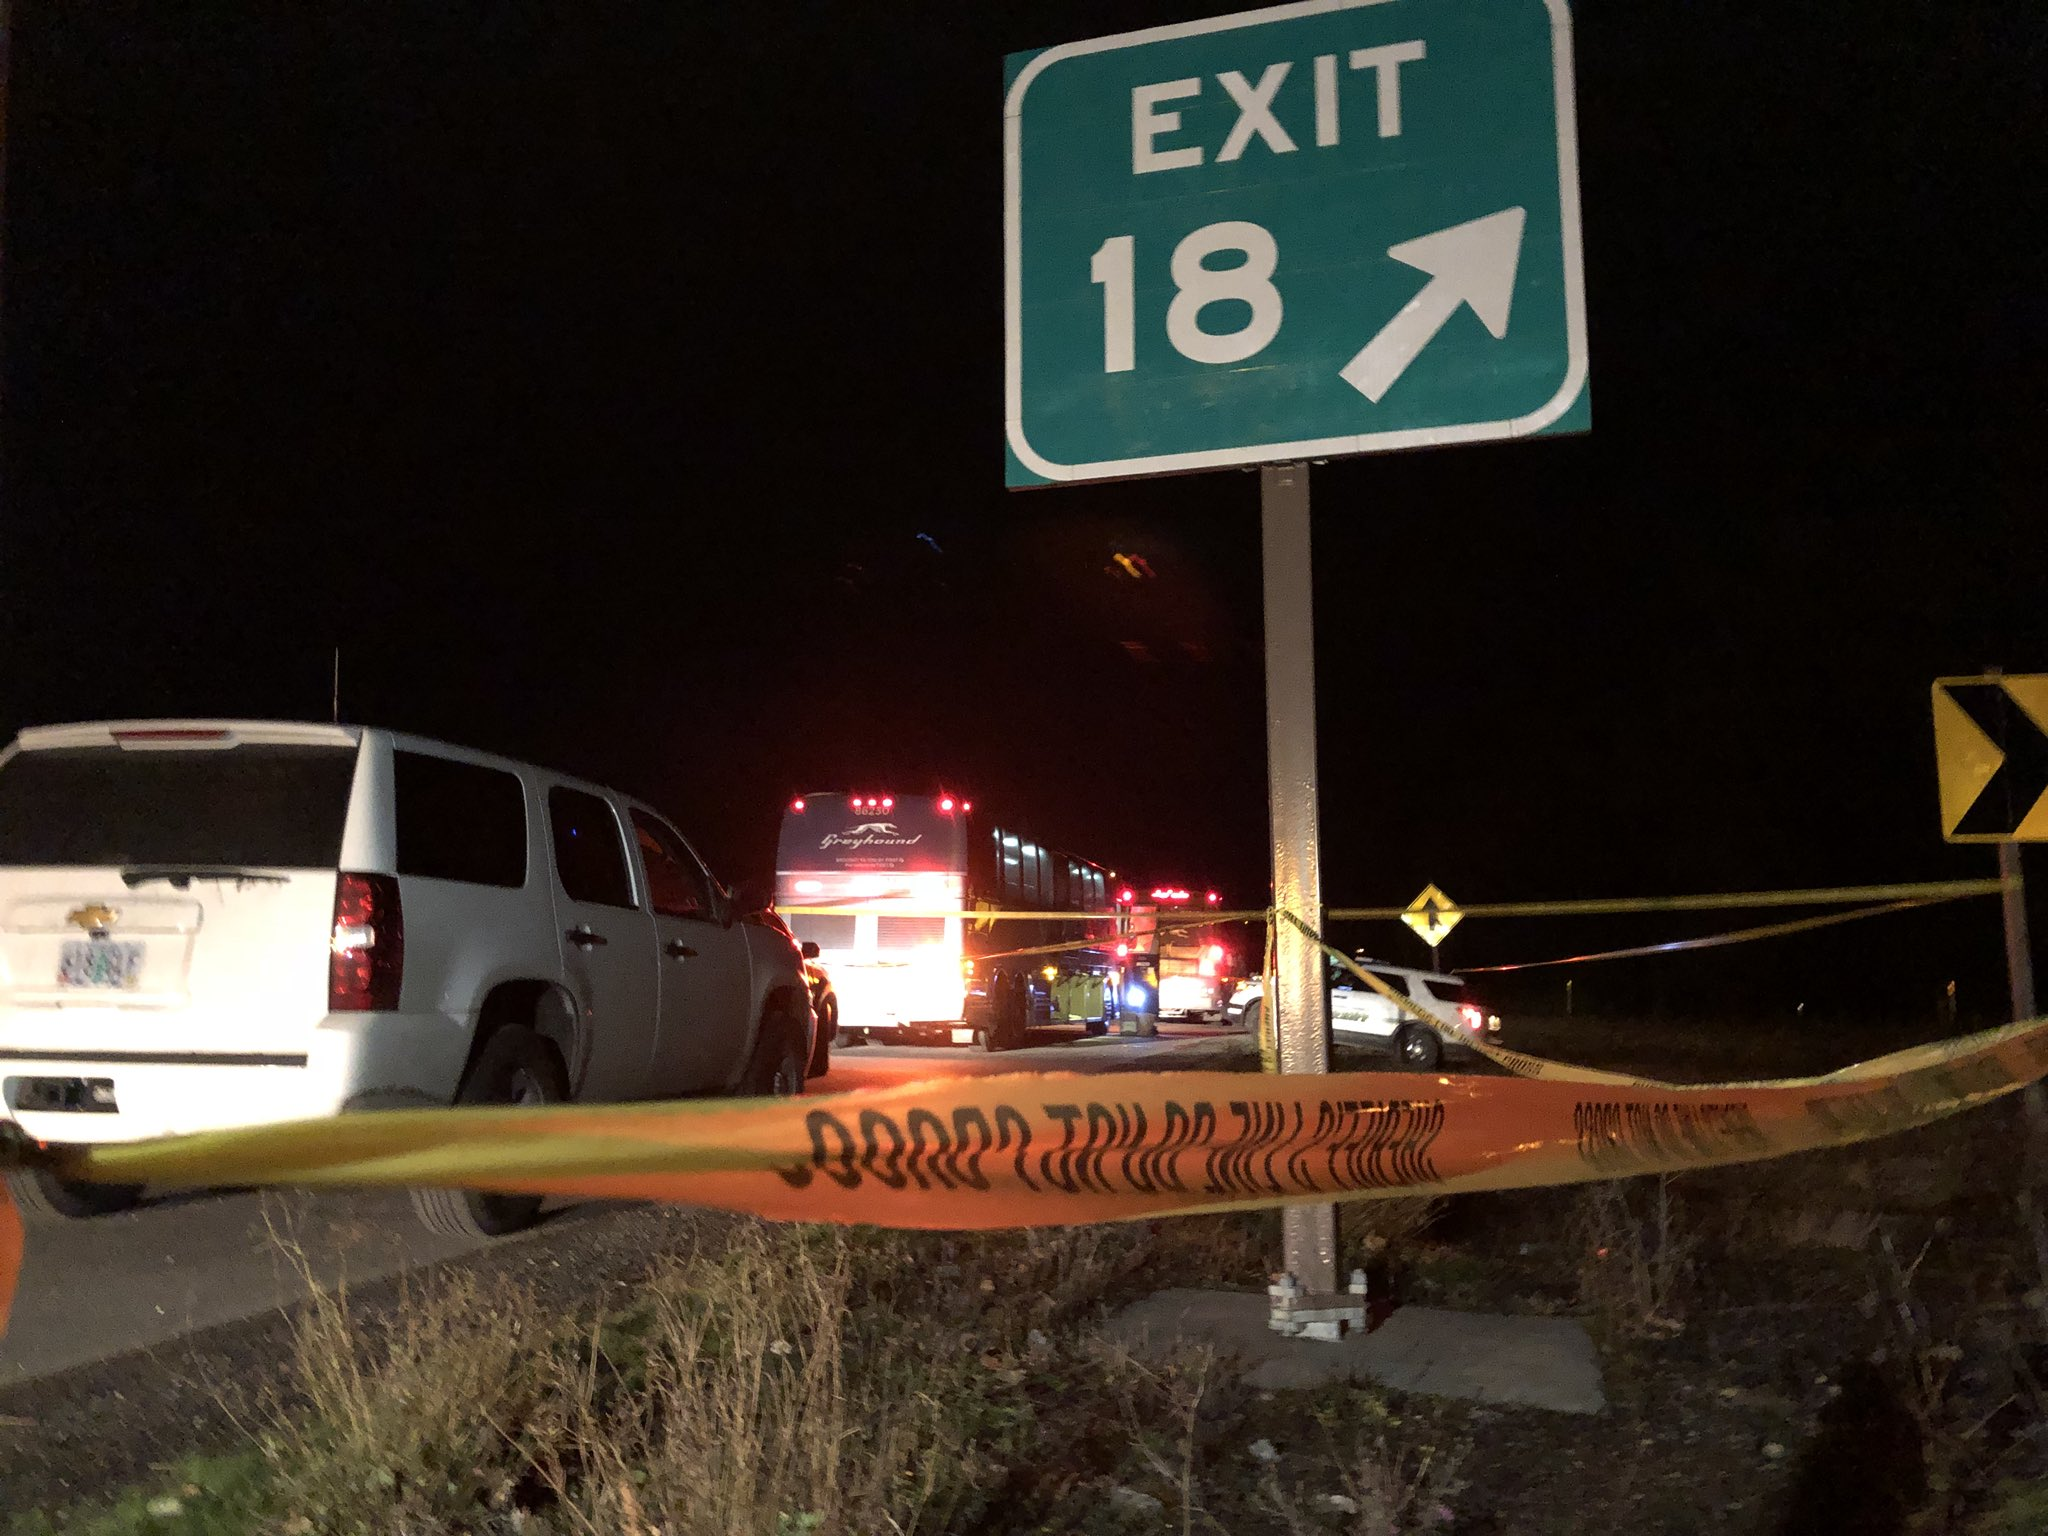 Two people were stabbed on a Greyhound bus near Troutdale the night of Wednesday, Nov. 30, 2017, according to Multnomah County Sheriff's Office. KATU photo